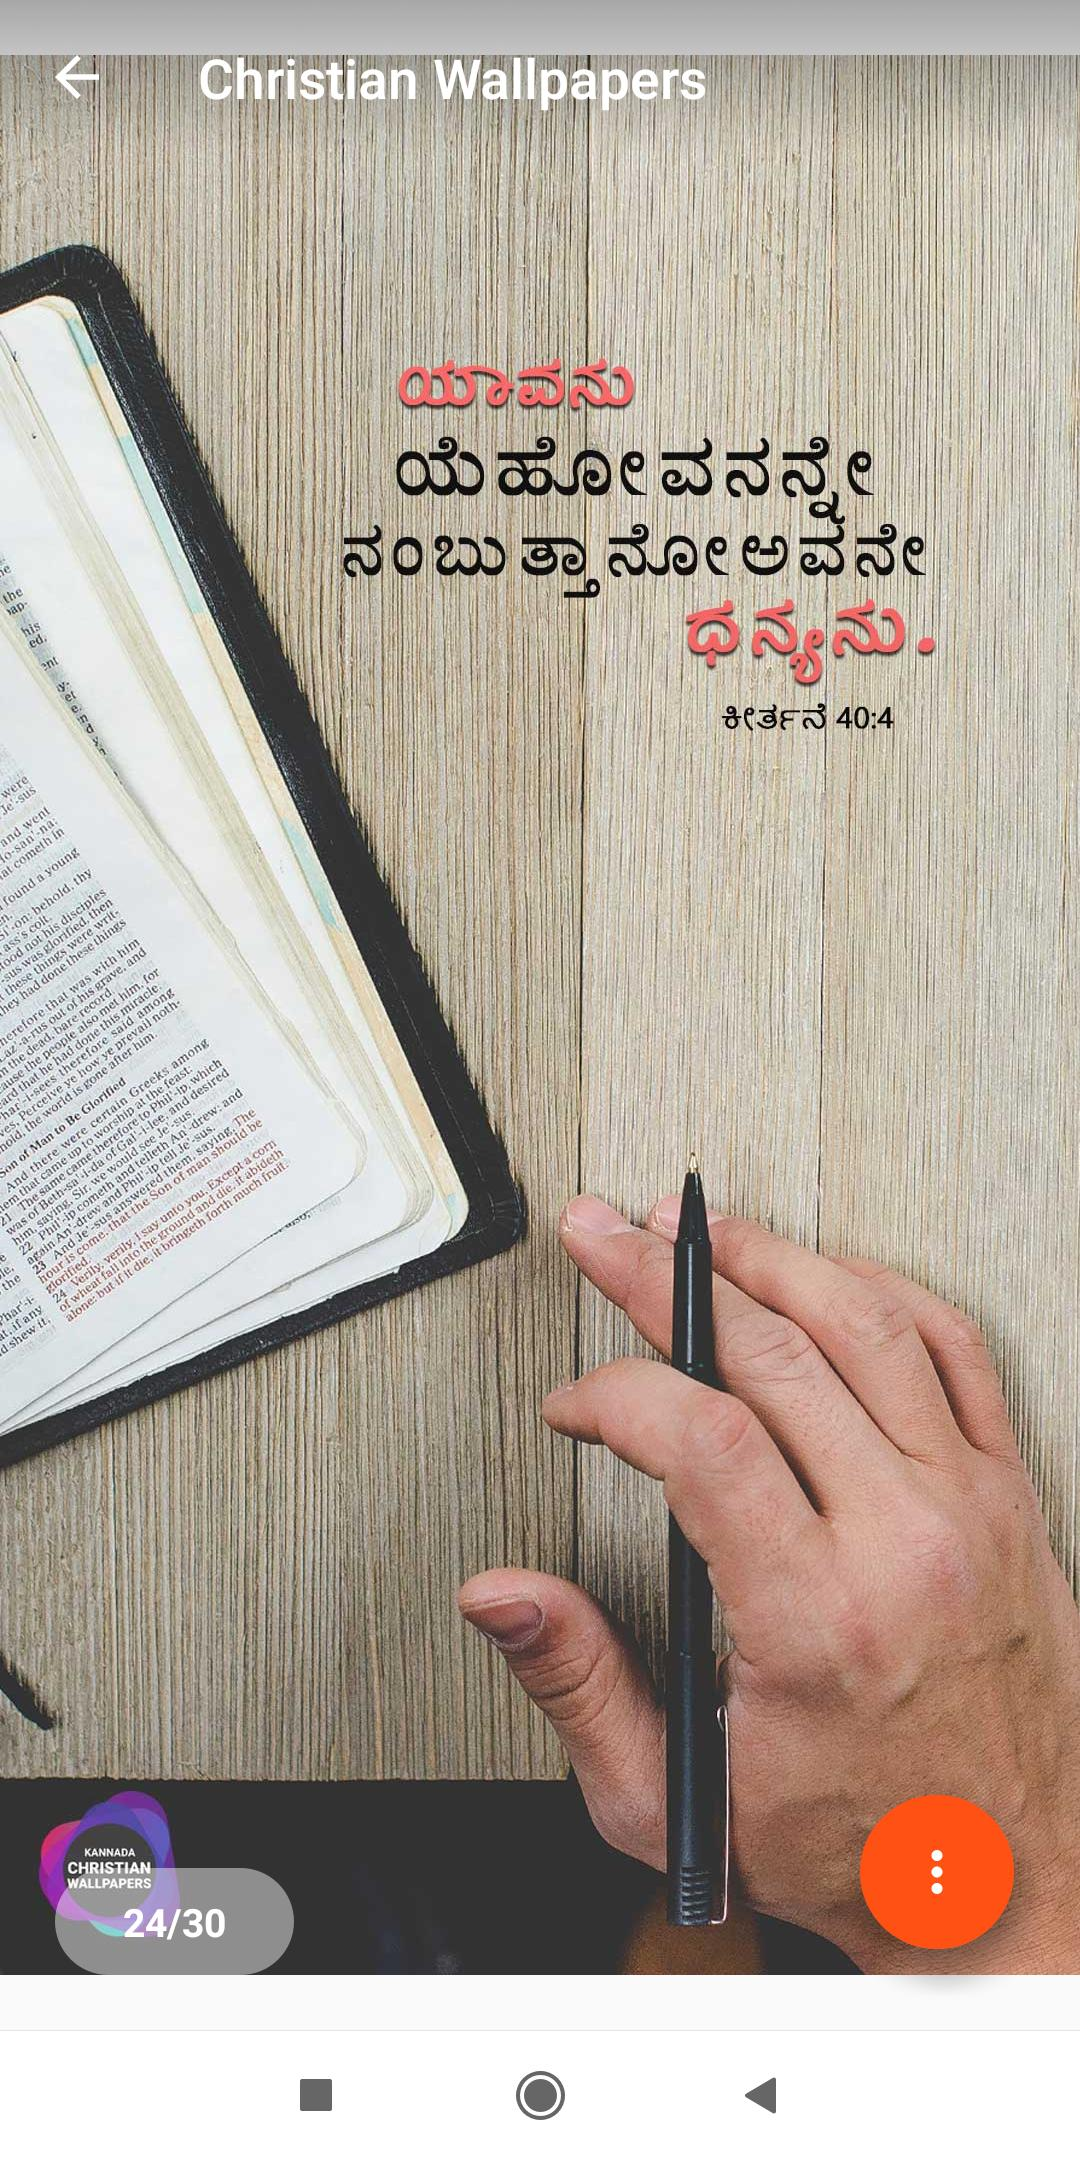 Kannada Bible Wallpapers Christian Wallpapers For Android Apk Download